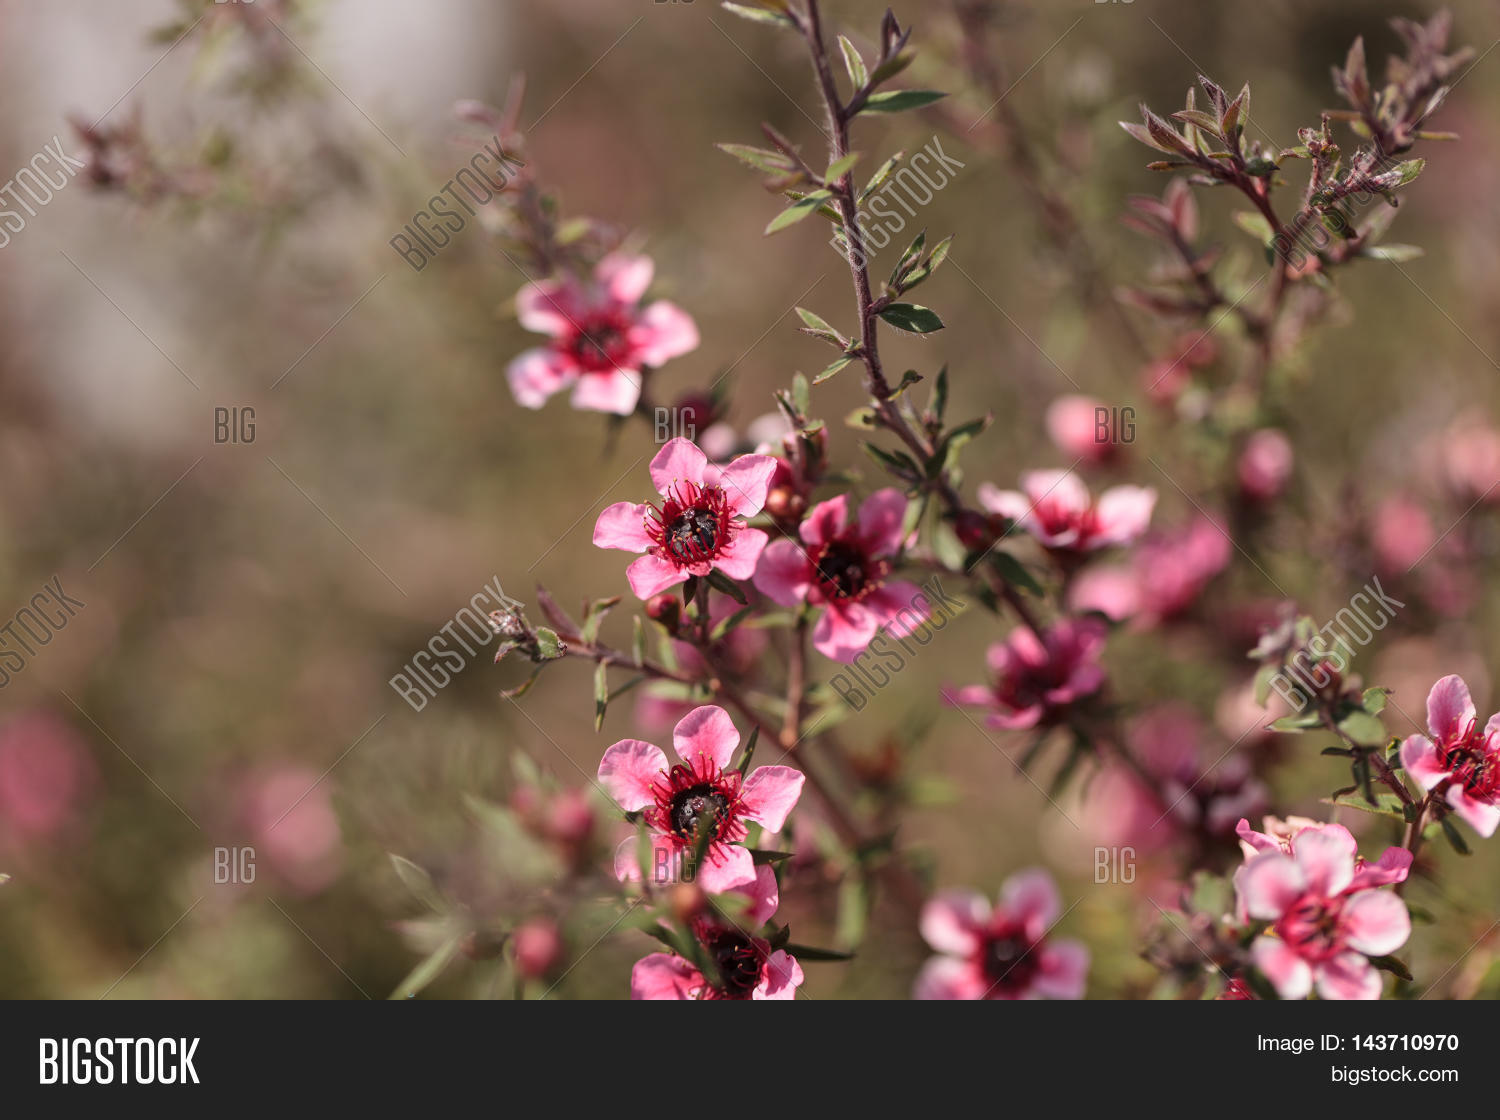 Tiny Pink Flowers On Image Photo Free Trial Bigstock